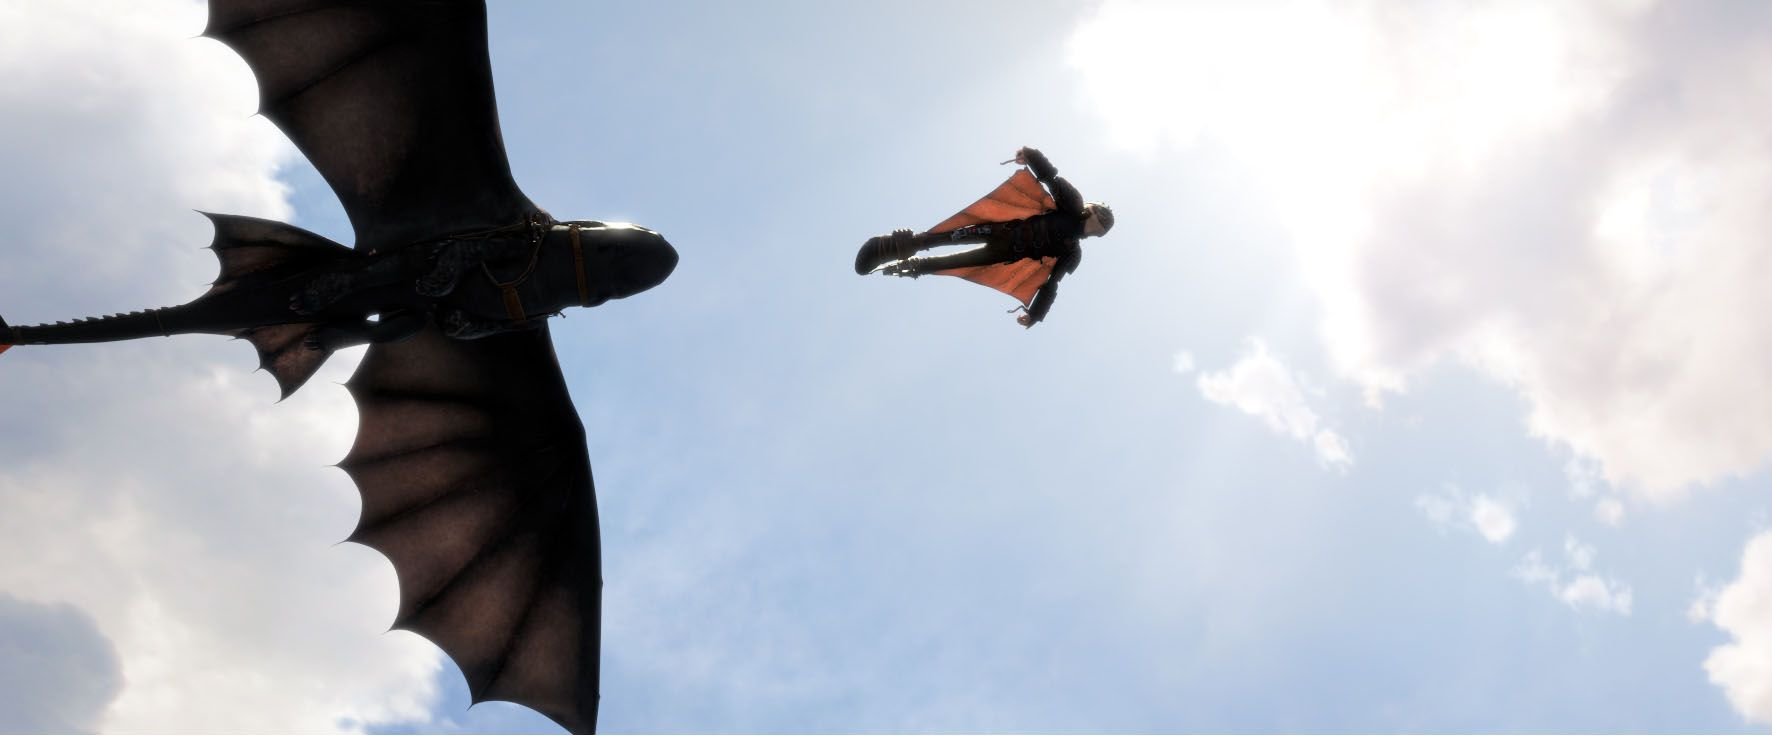 How to train your dragon 2 clip and images featuring kit harington how to train your dragon 2 image hiccup ccuart Images